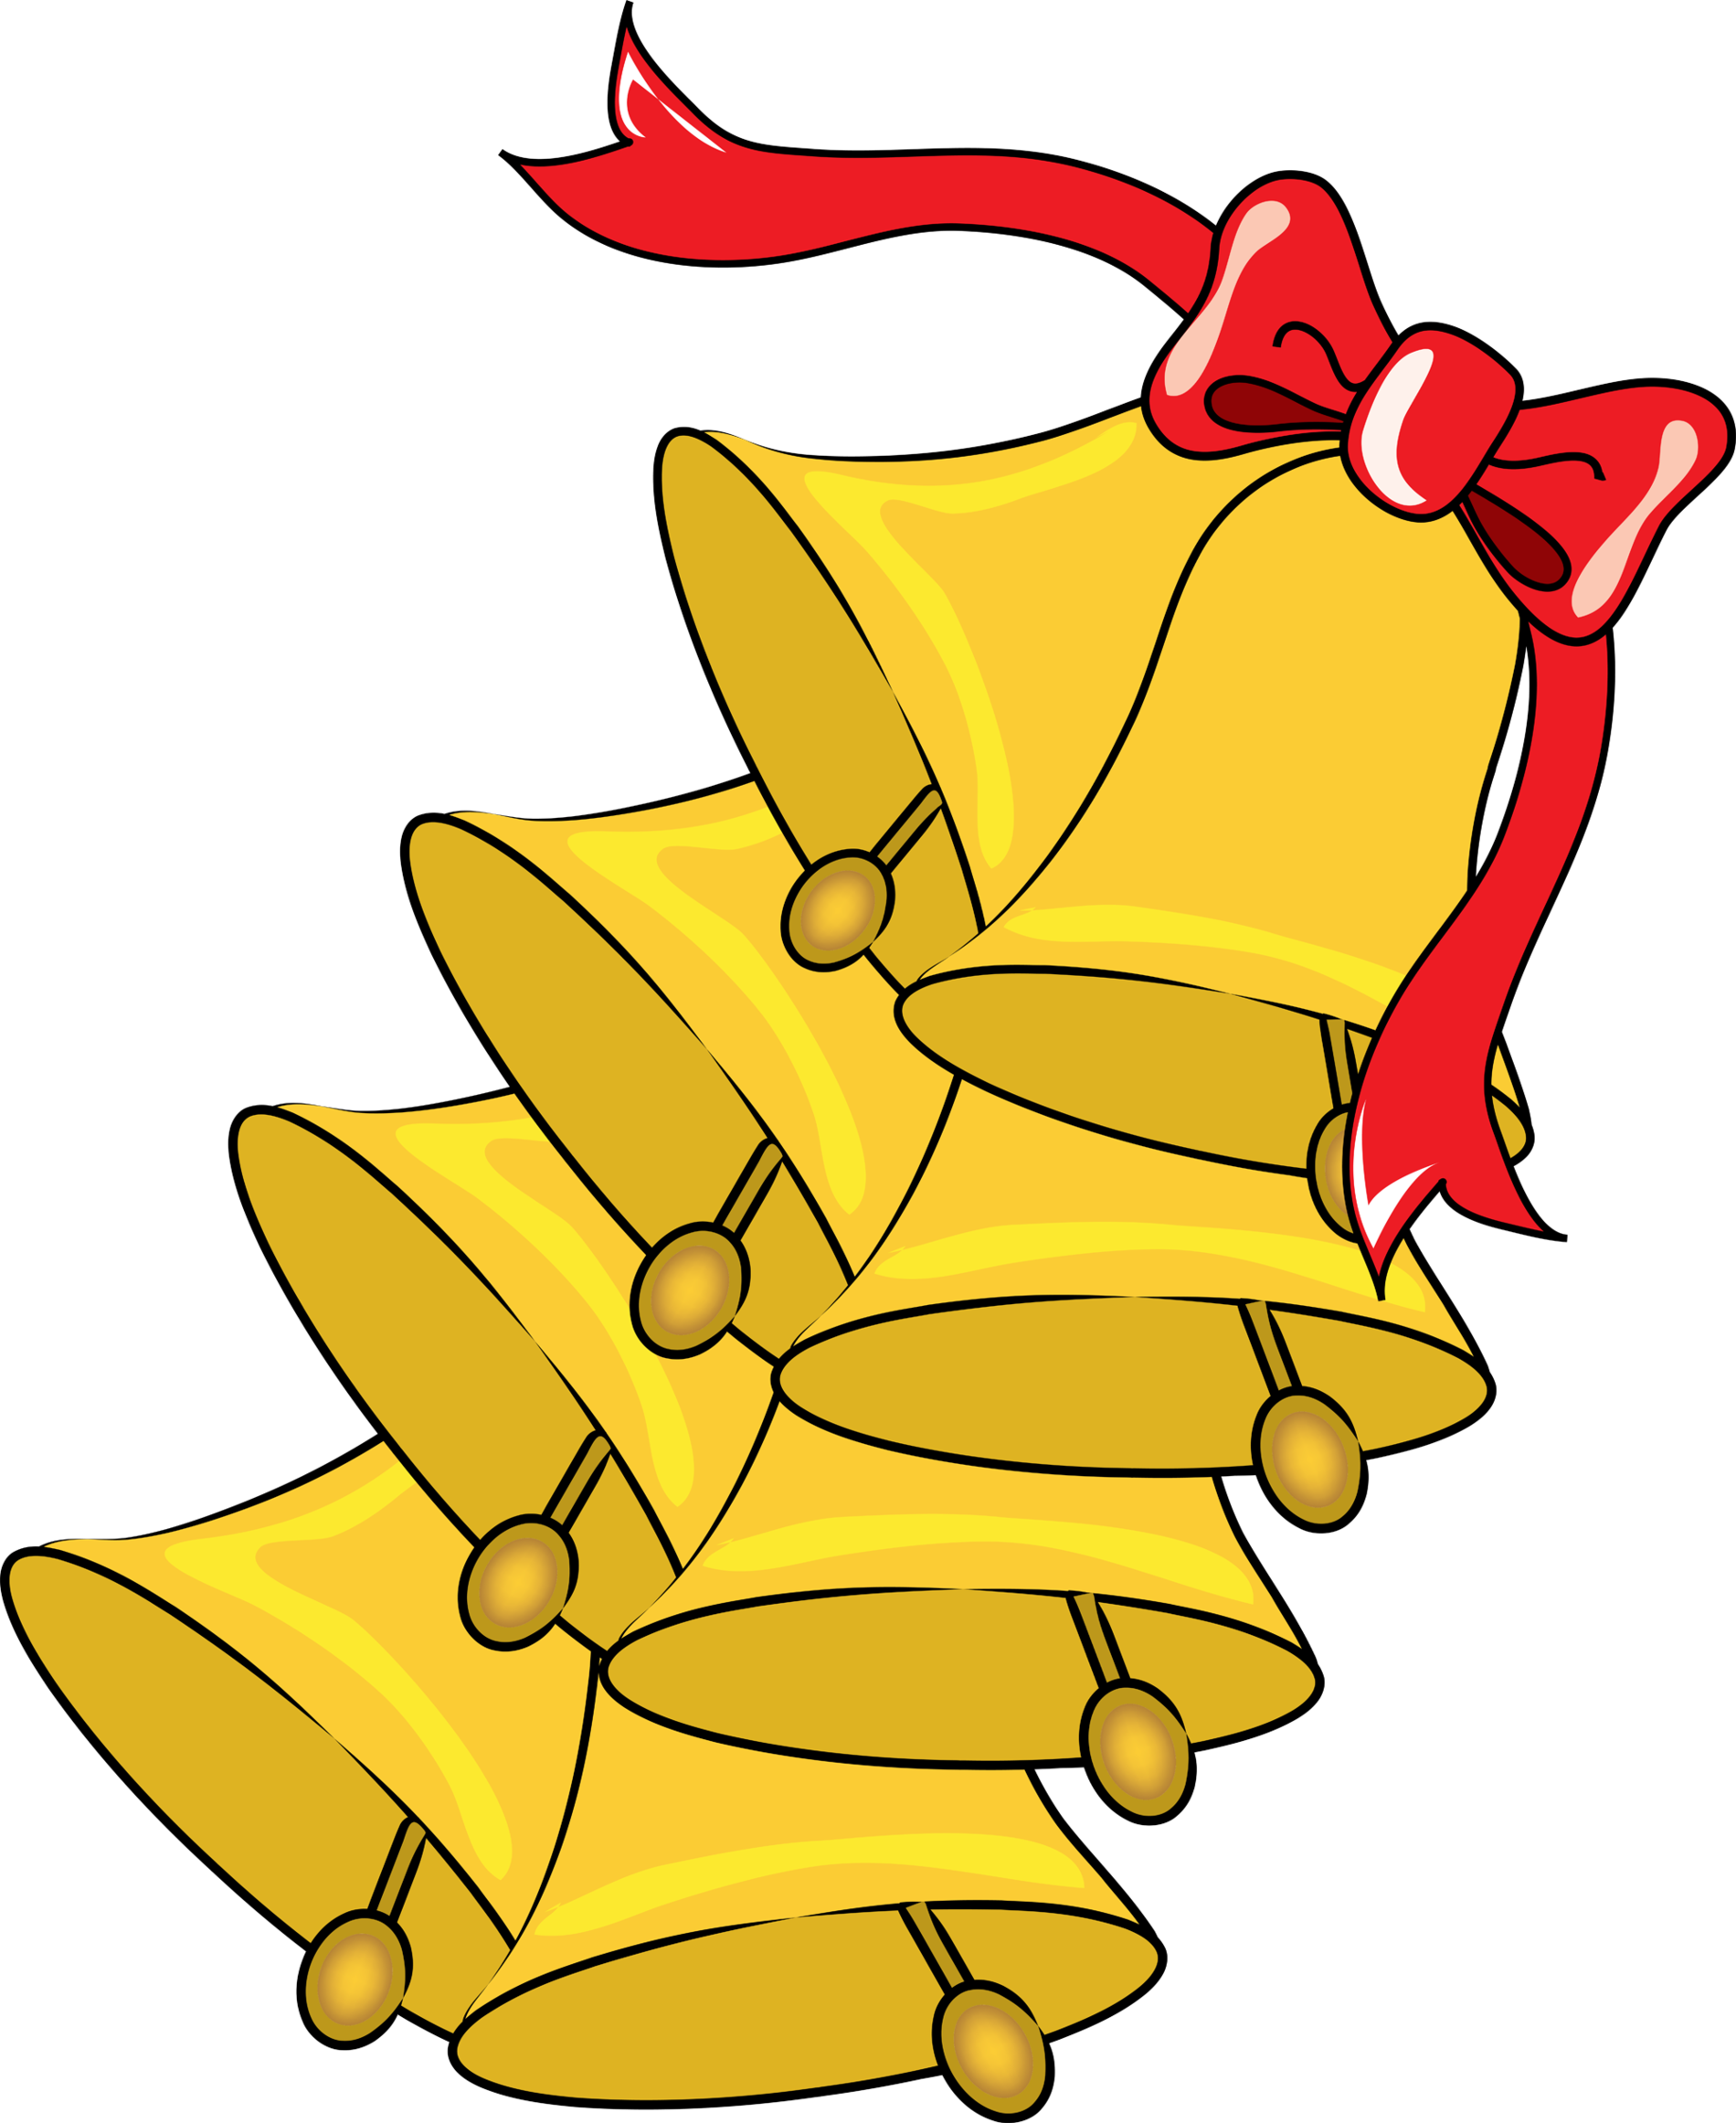 Clipart rock animated. Bell clipground christmas song